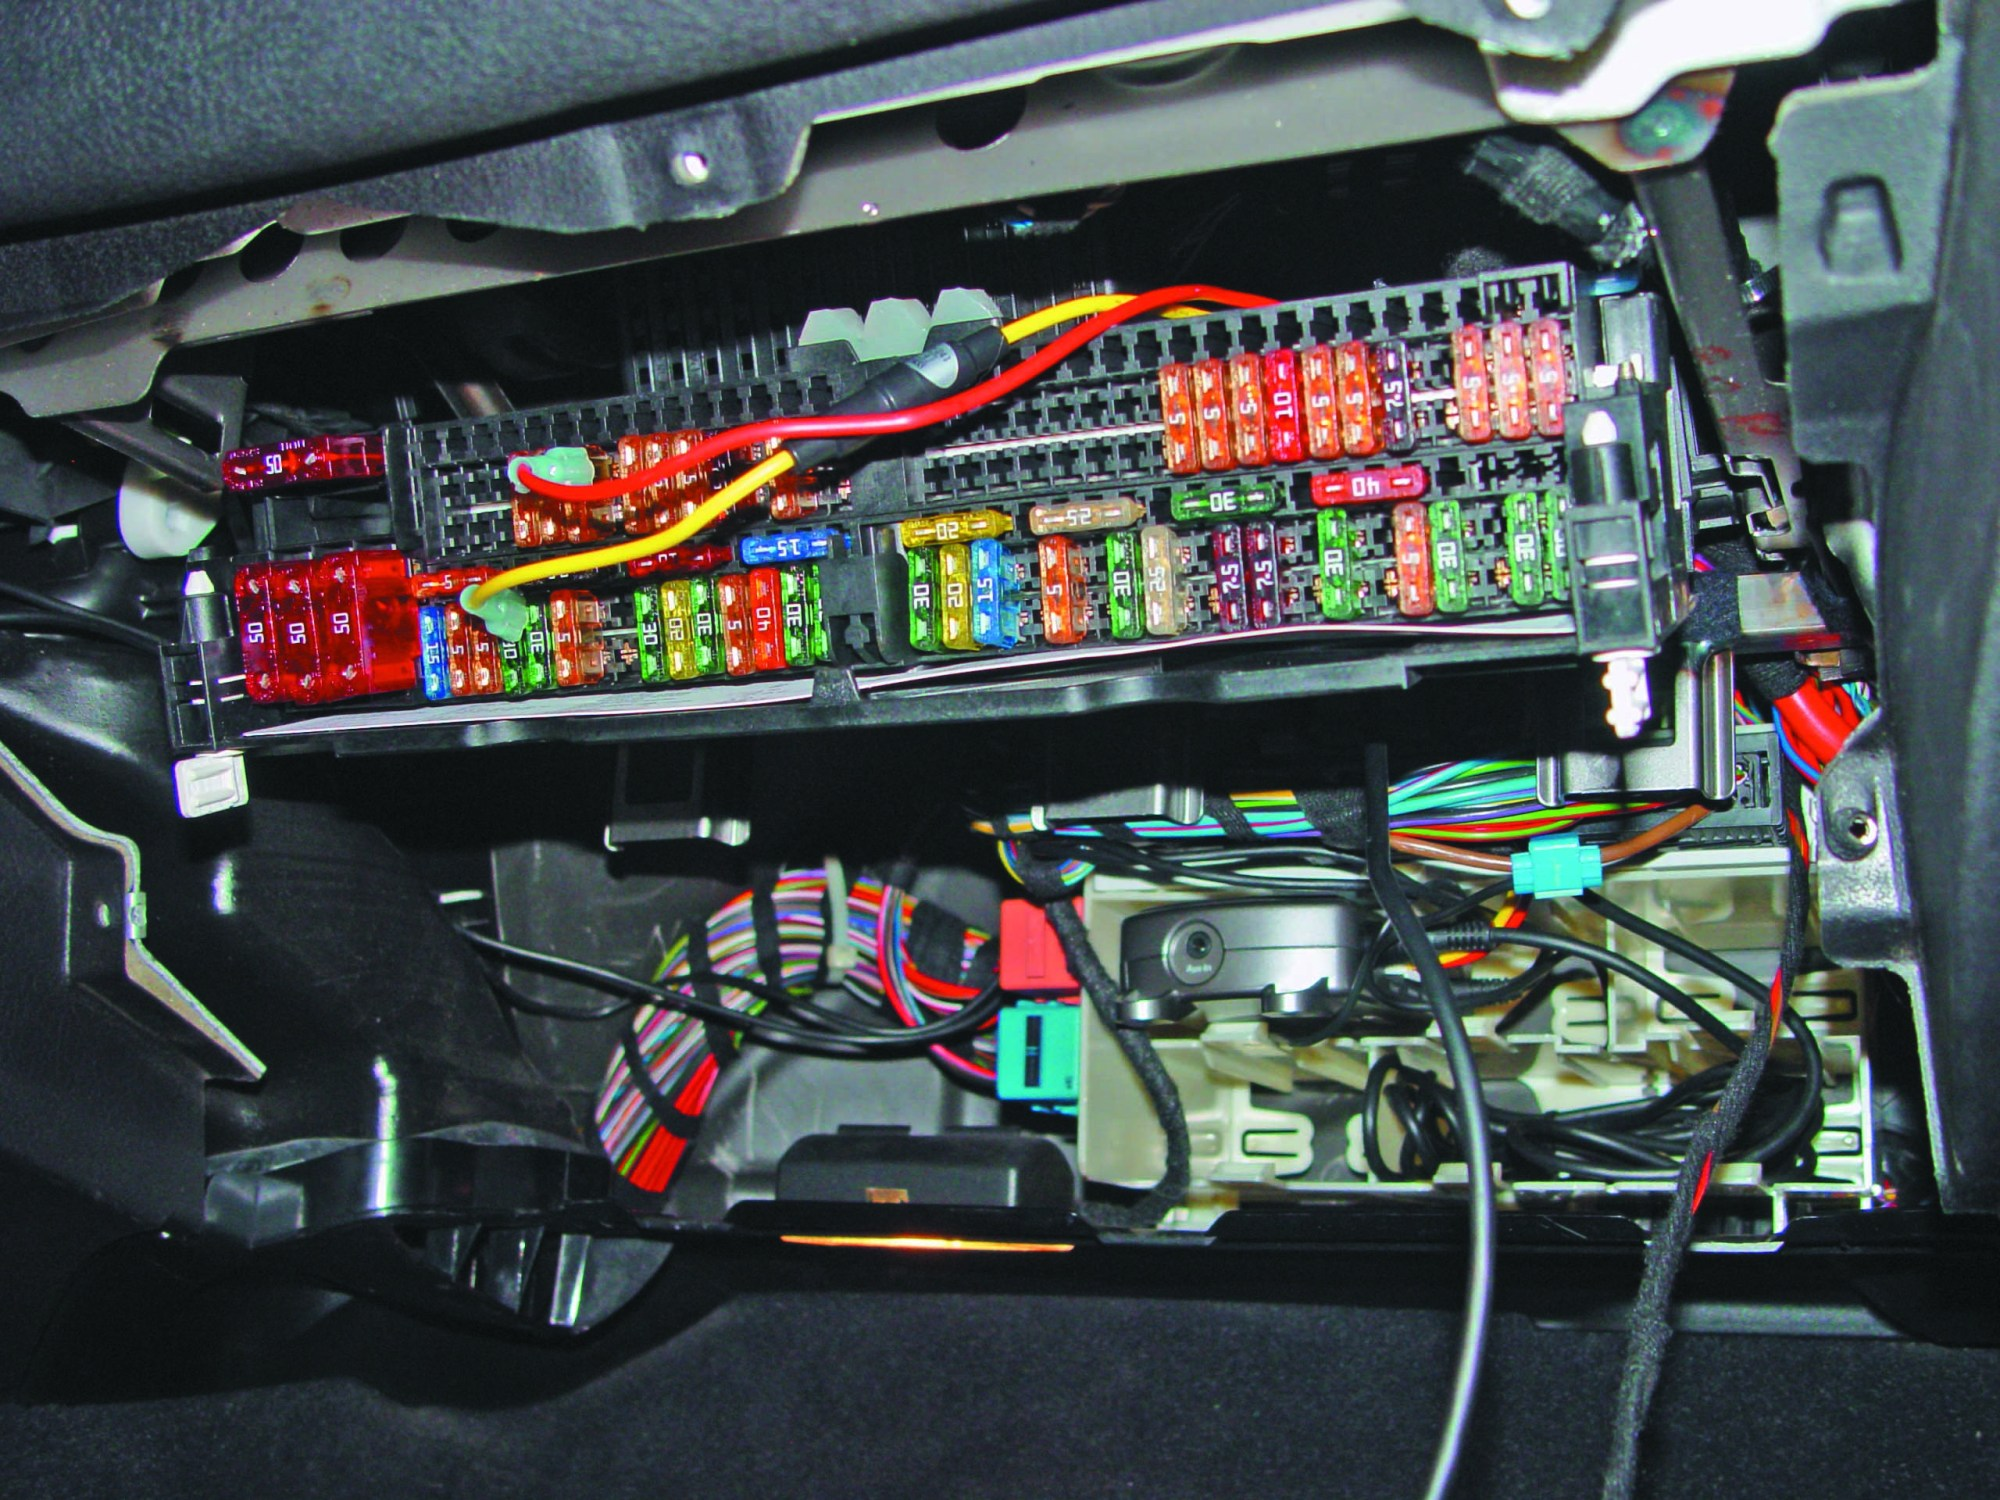 hight resolution of 2001 bmw x5 fuse box wiring diagram listfuse box location 2001 bmw x5 wiring diagram fascinating